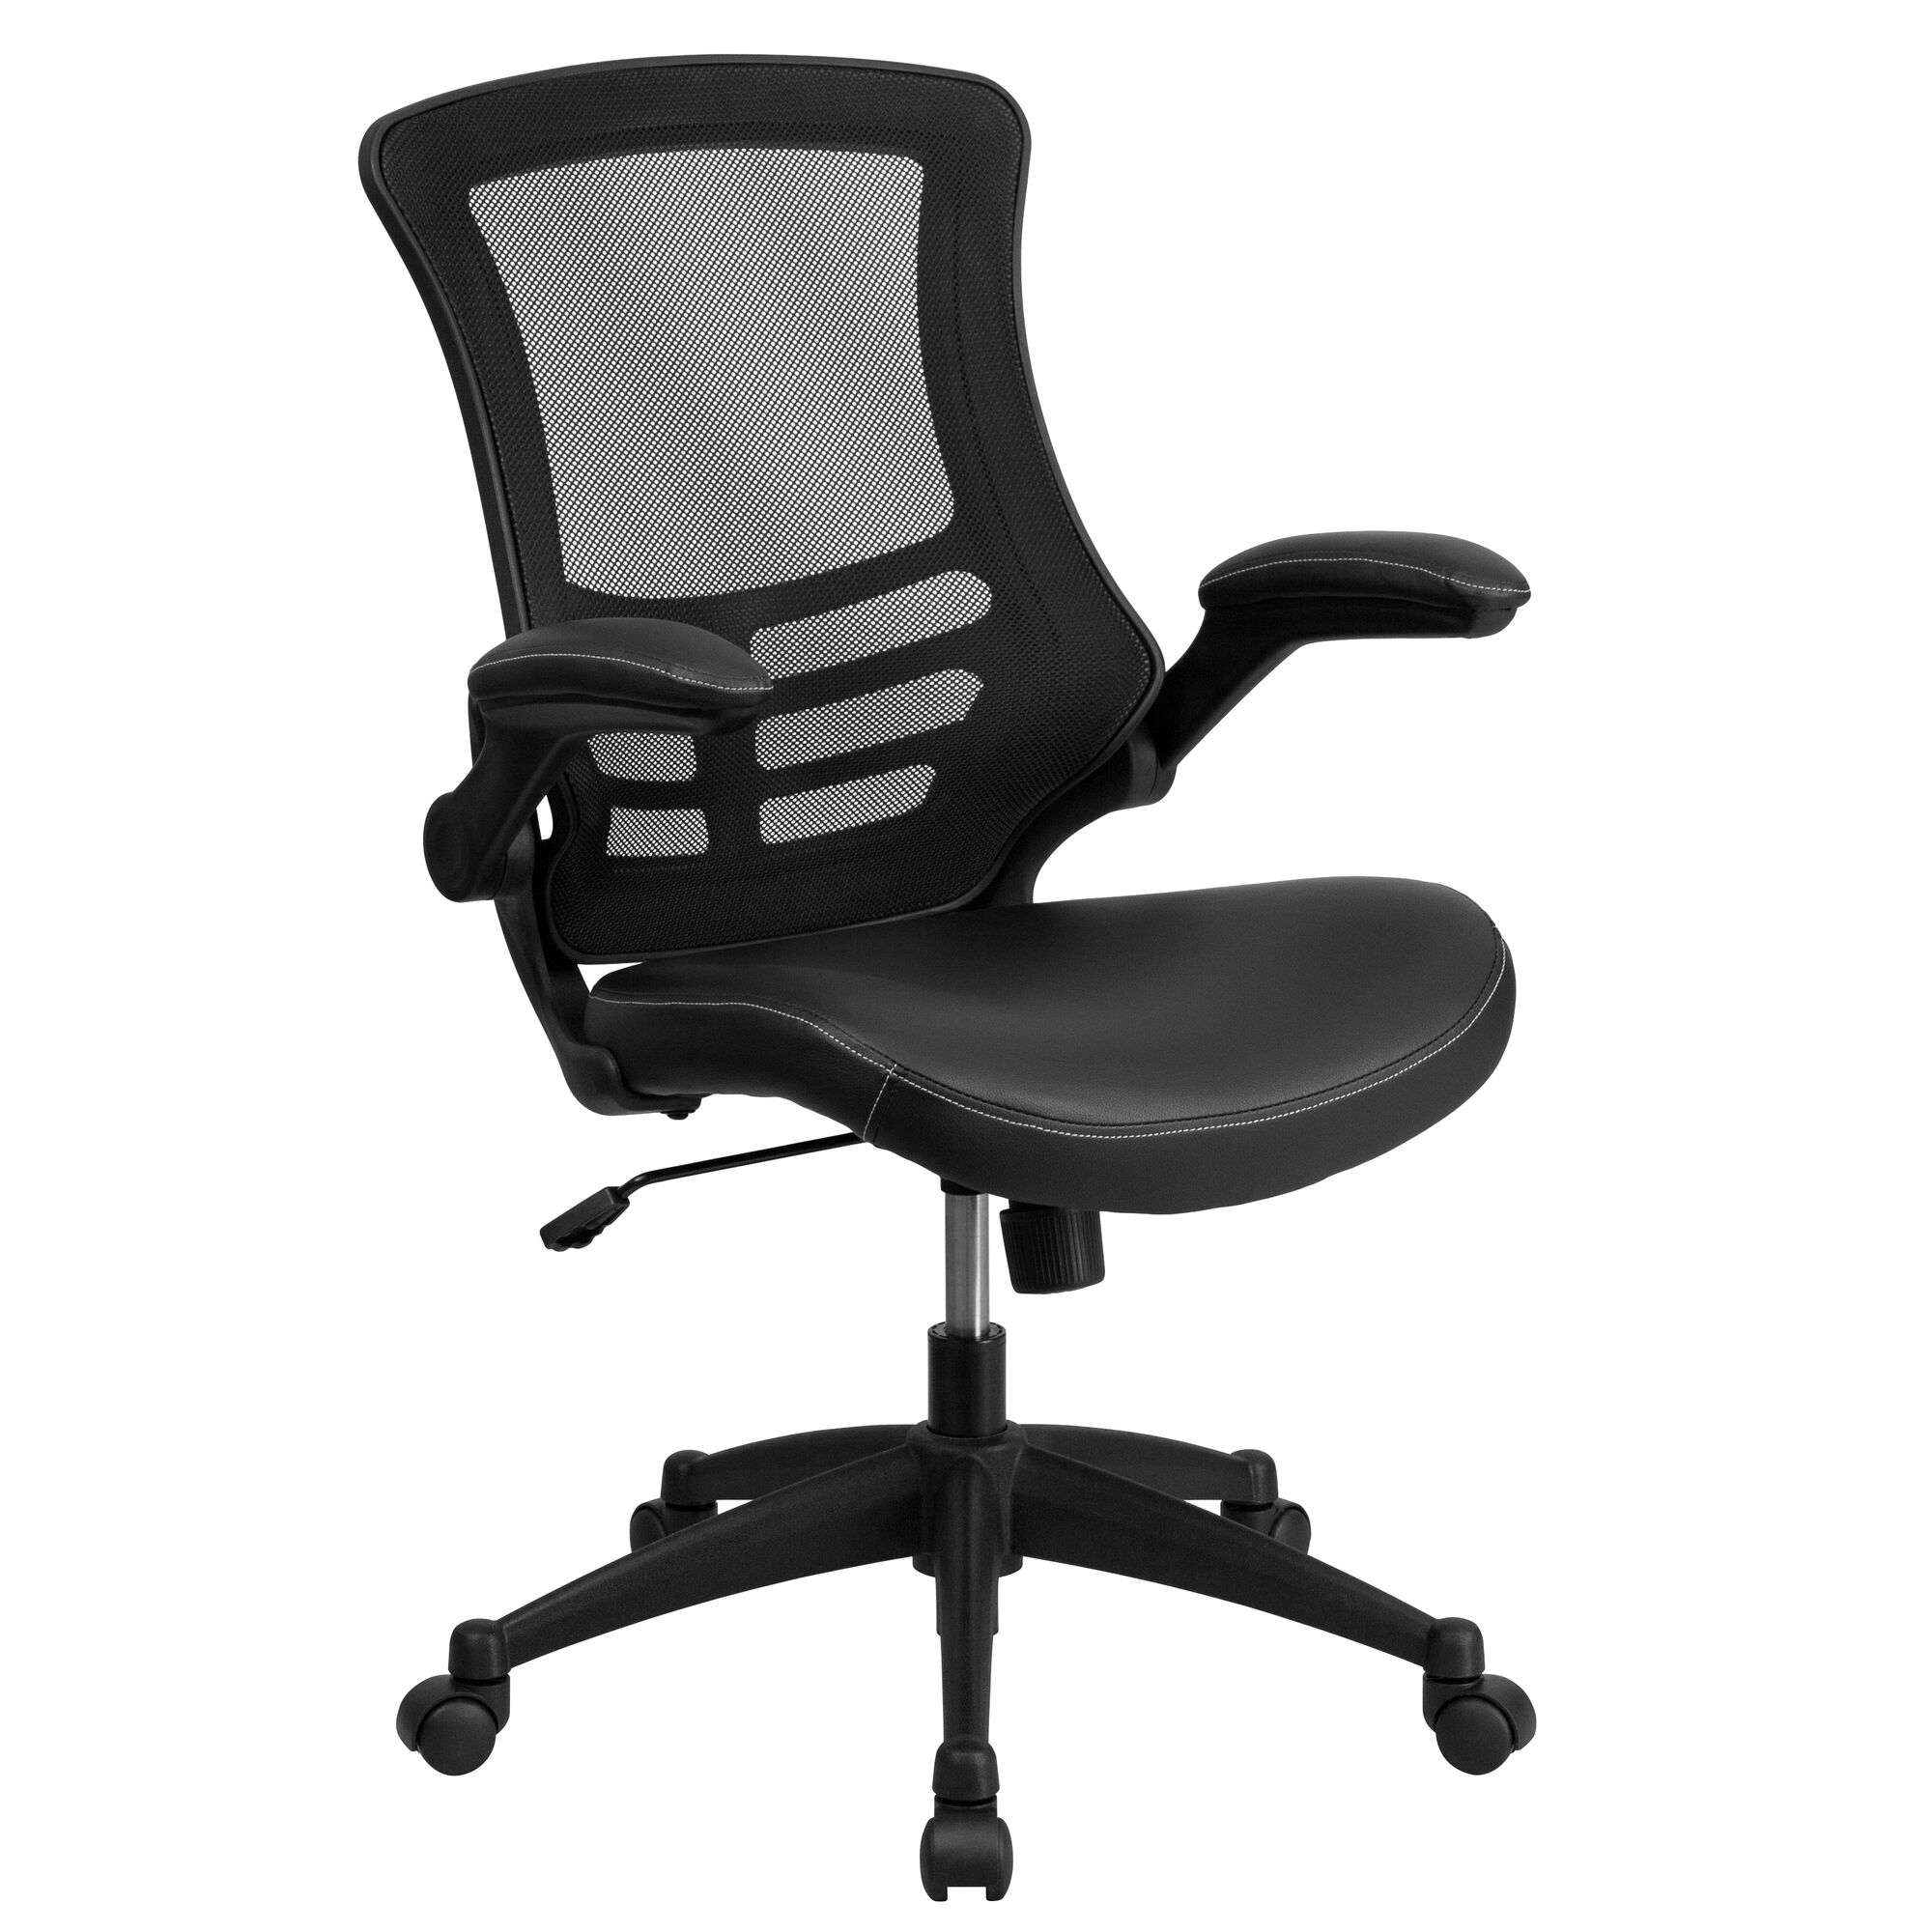 Chair With Wheels >> Desk Chair With Wheels Swivel Chair With Mid Back Black Mesh And Leathersoft Seat For Home Office And Desk